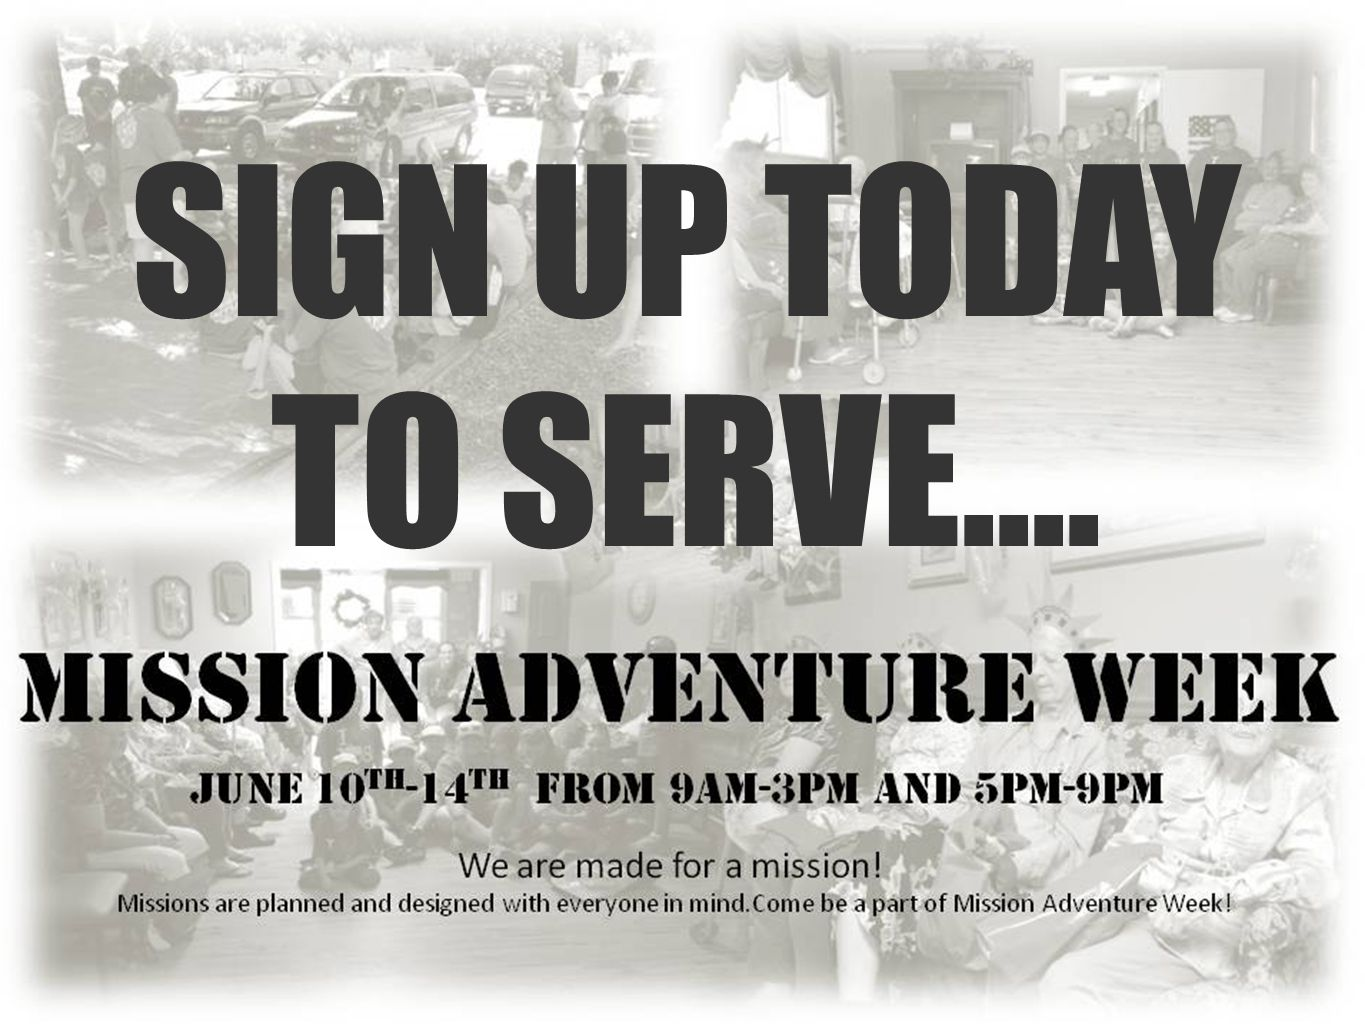 SIGN UP TODAY TO SERVE....